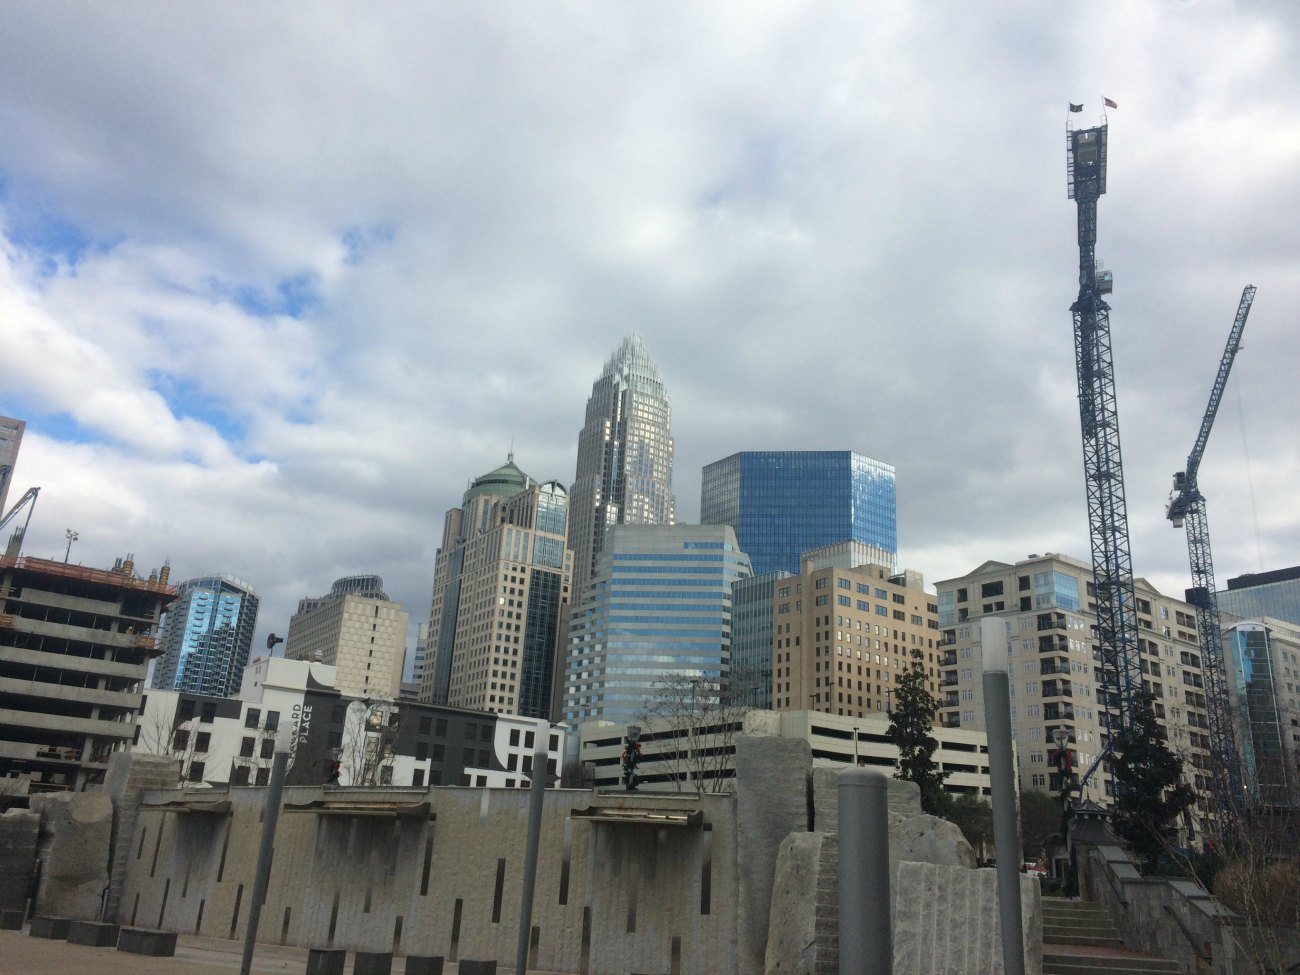 Here are 15 things to do in Charlotte when it's cold and miserable outside